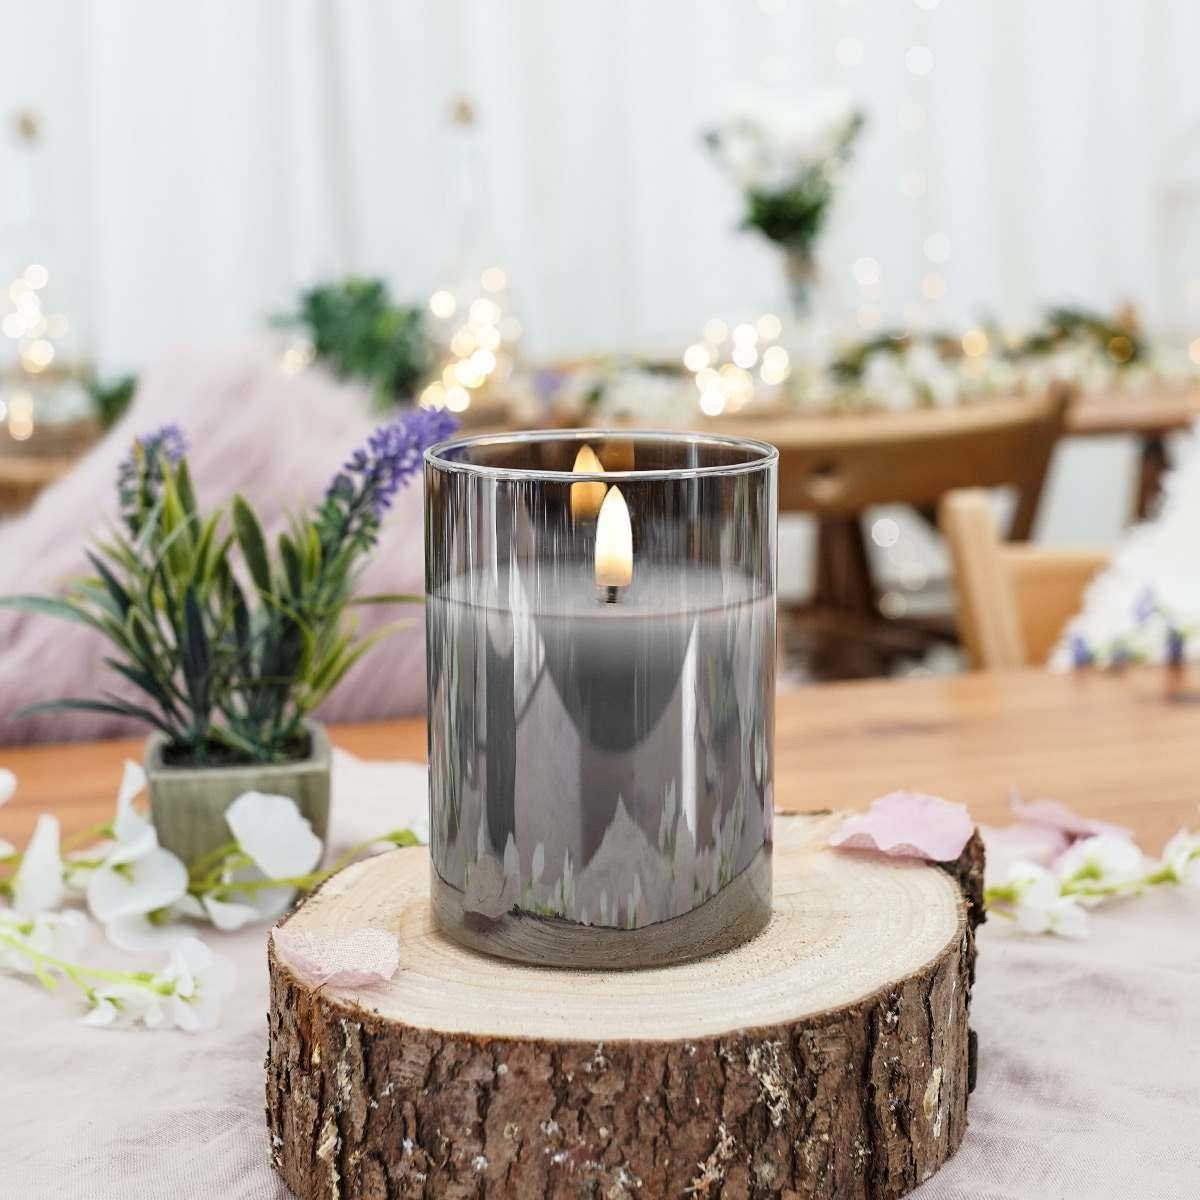 A set of three battery powered smoked glass candle jars, styled on a wooden log as part of a wedding table centrepiece